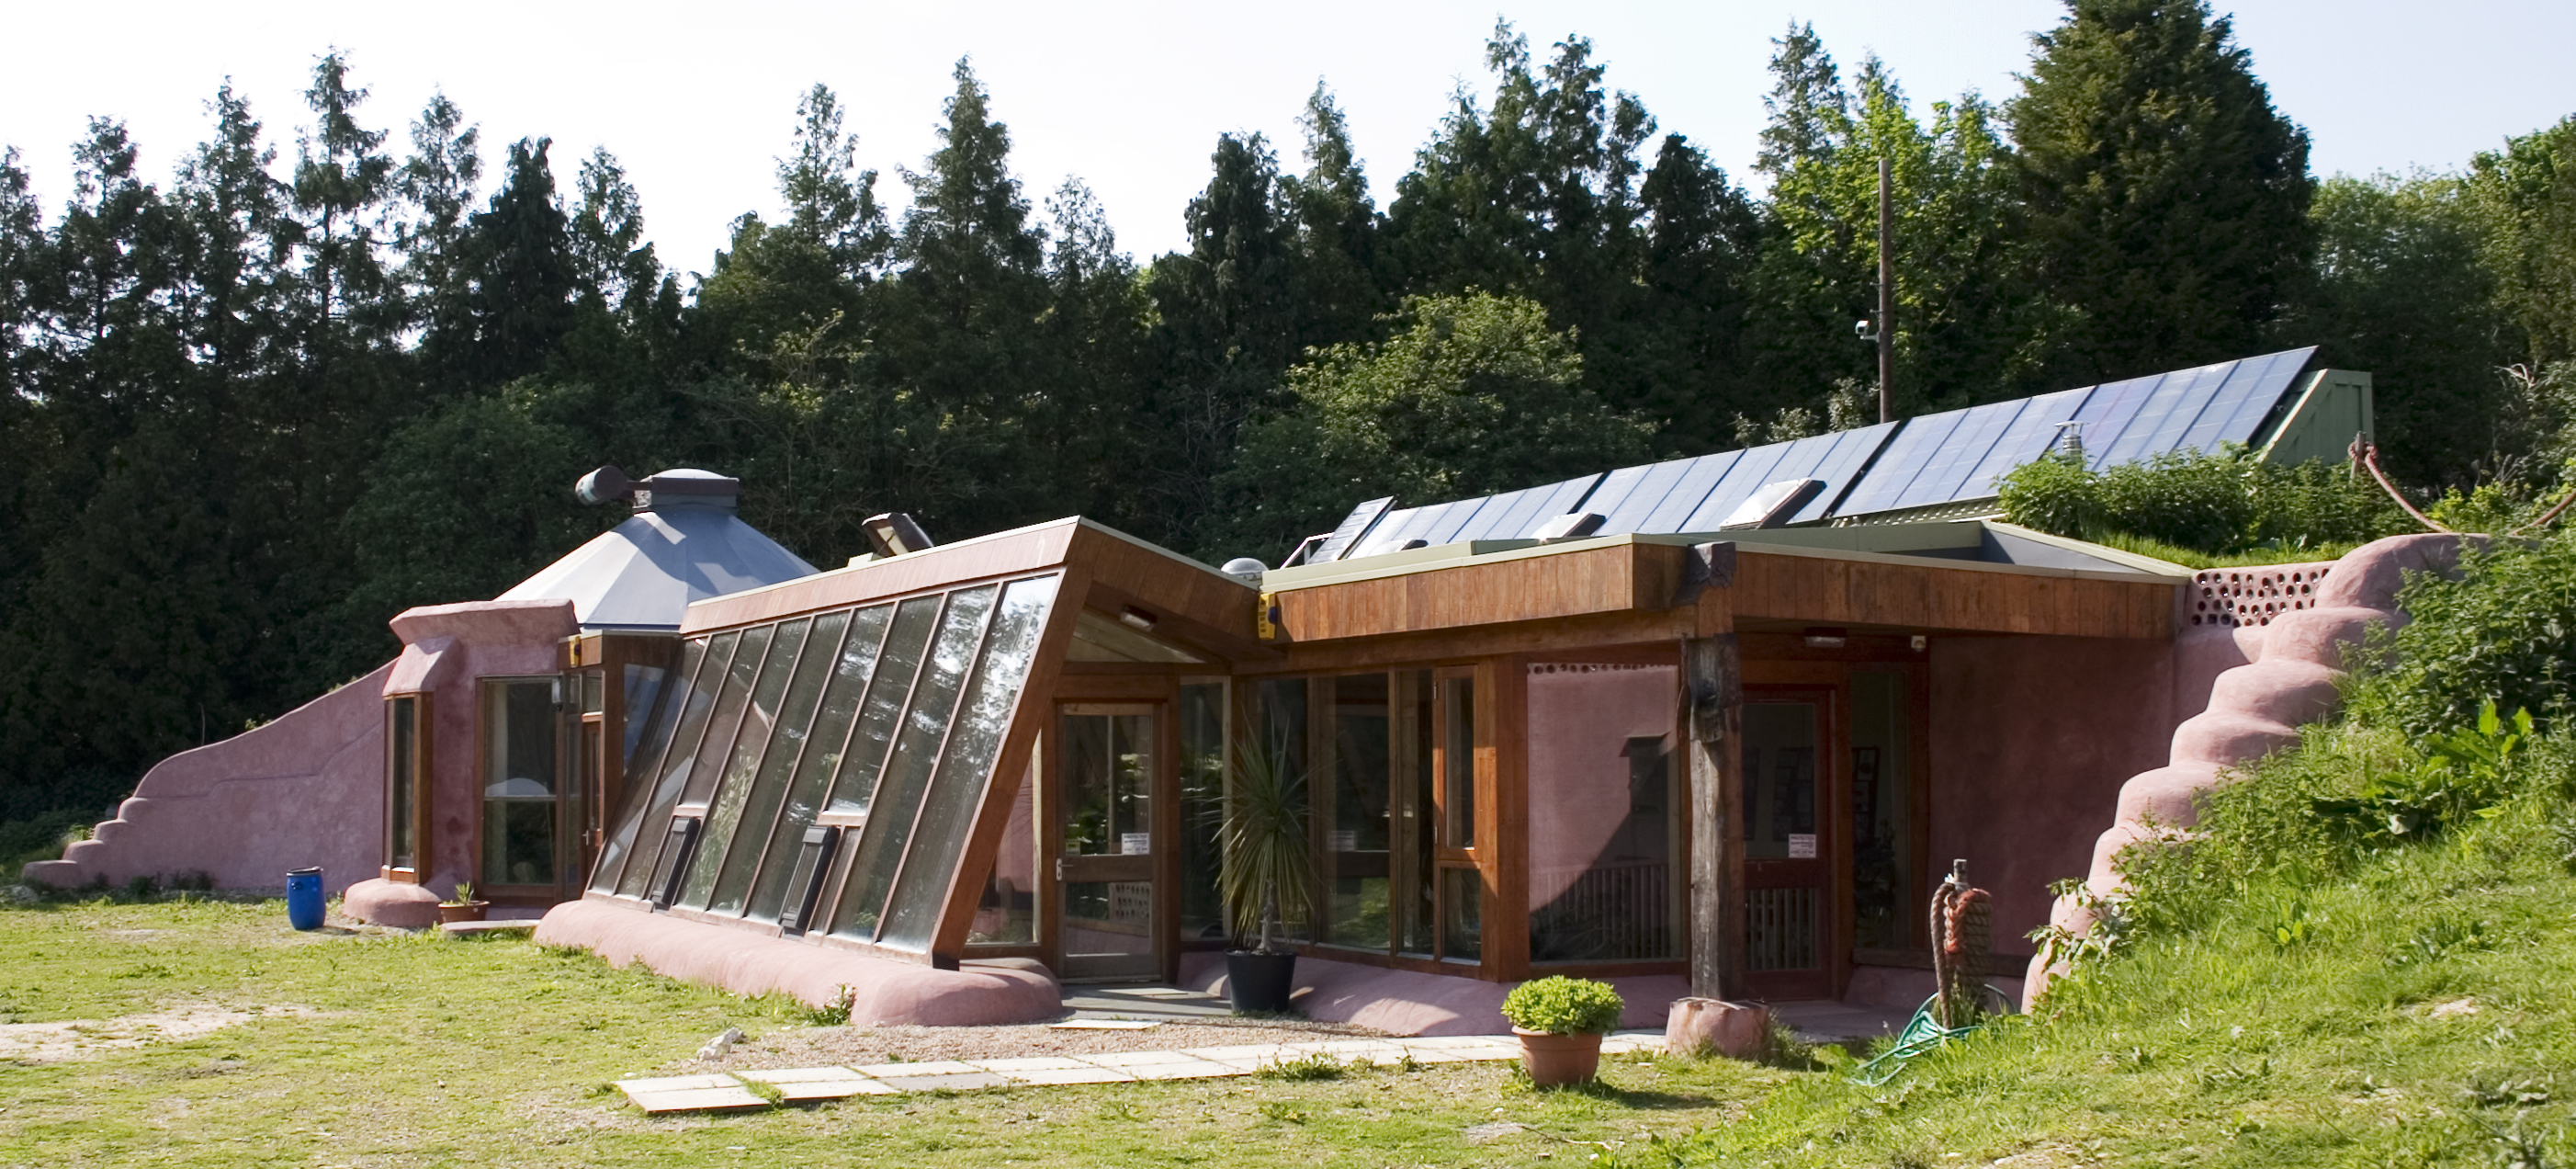 File:Earthship Brighton Front.jpg - Wikimedia Commons